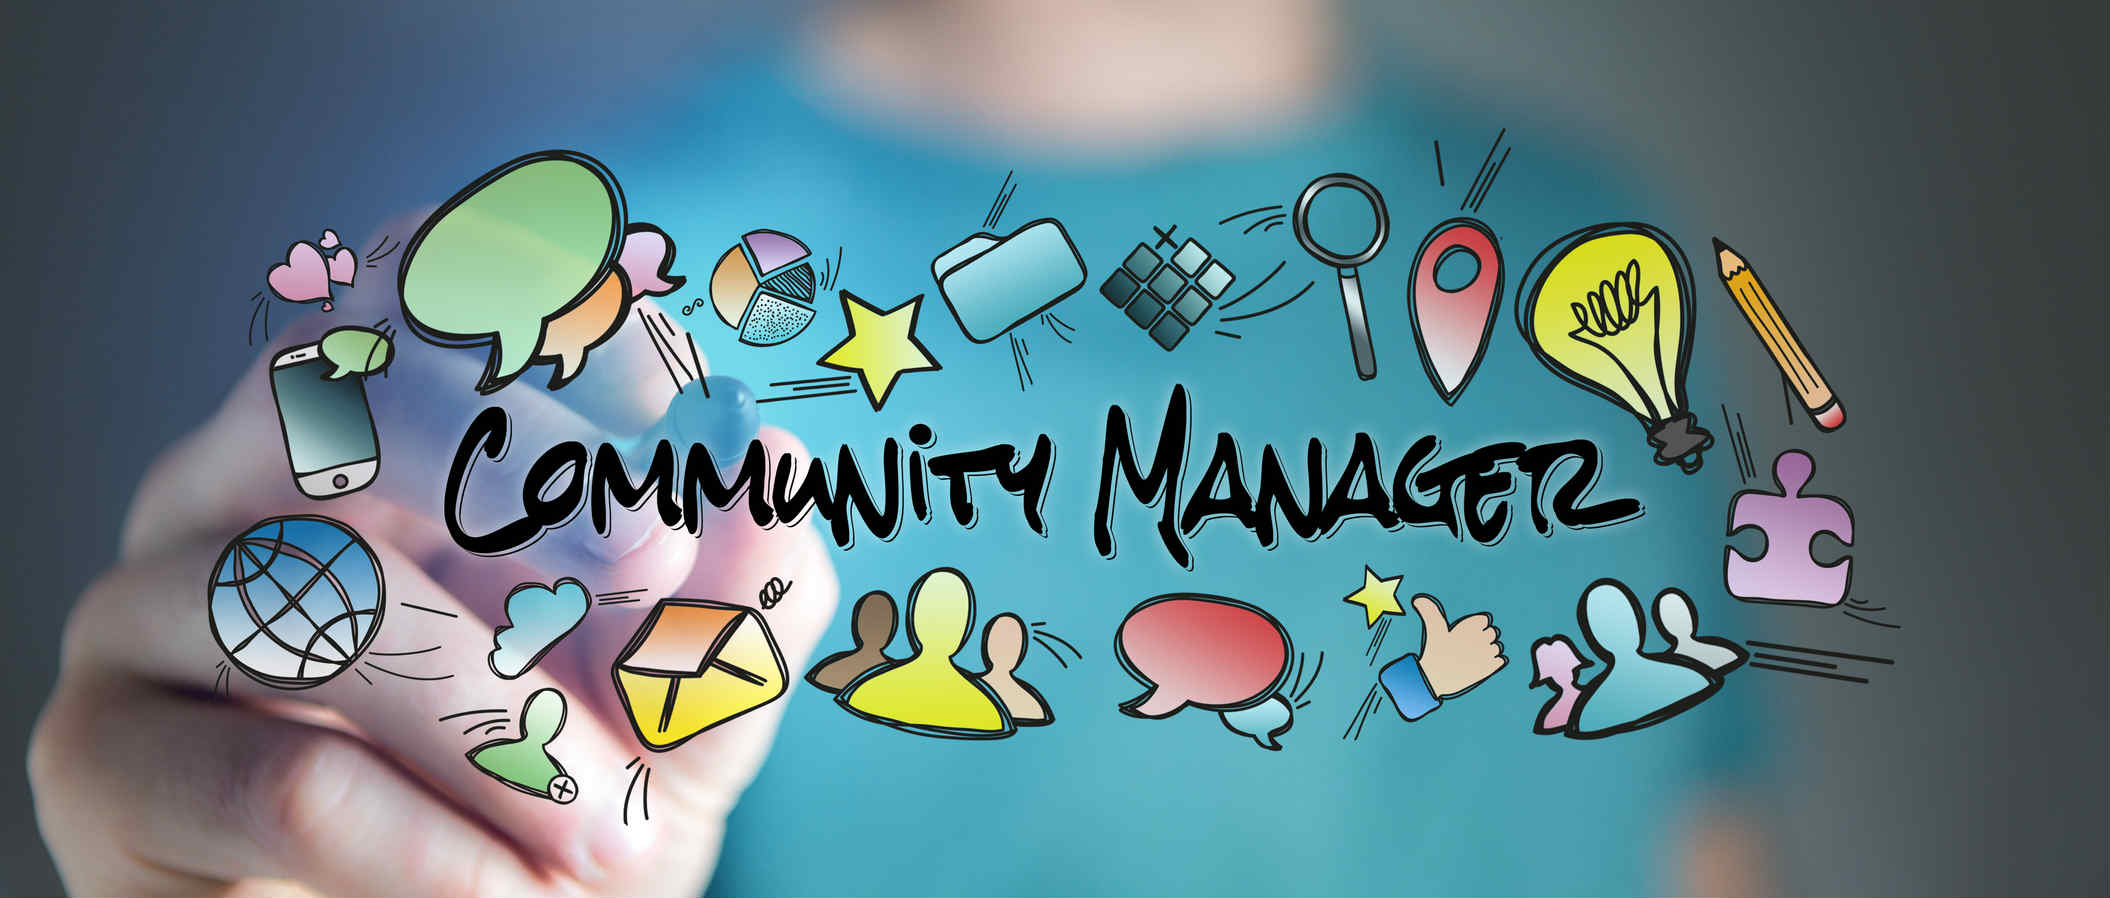 54 community manager 2